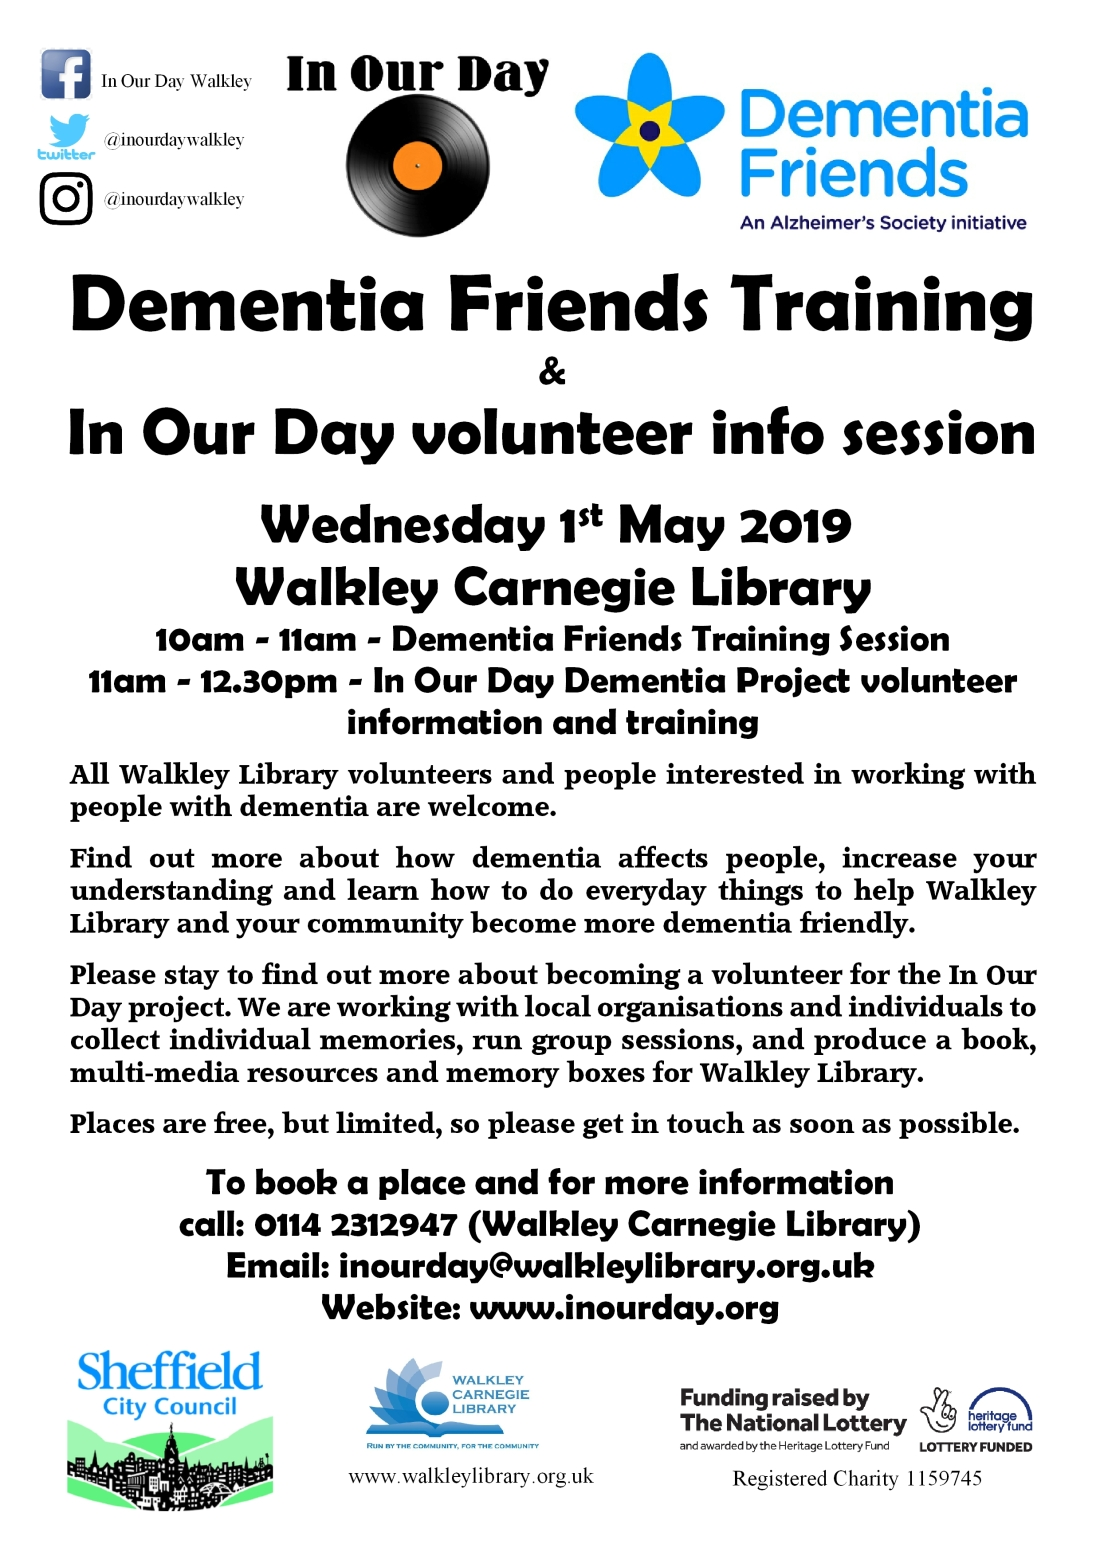 Dementia Friends Training 1st May 2019